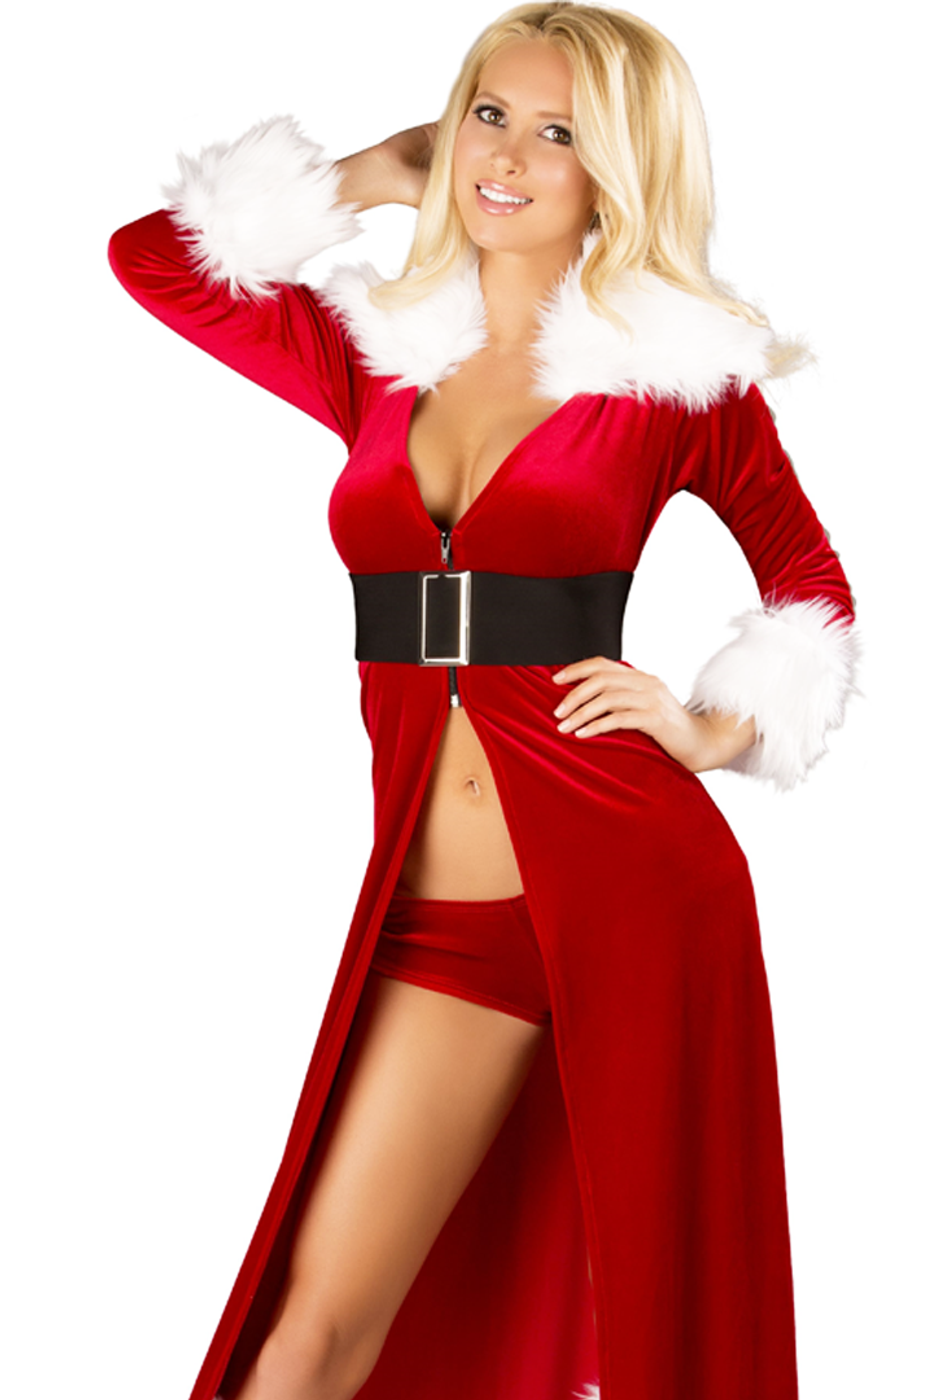 ec1029b53e442 Shop this women s red velvet Mrs. Claus costume with long red velvet robe